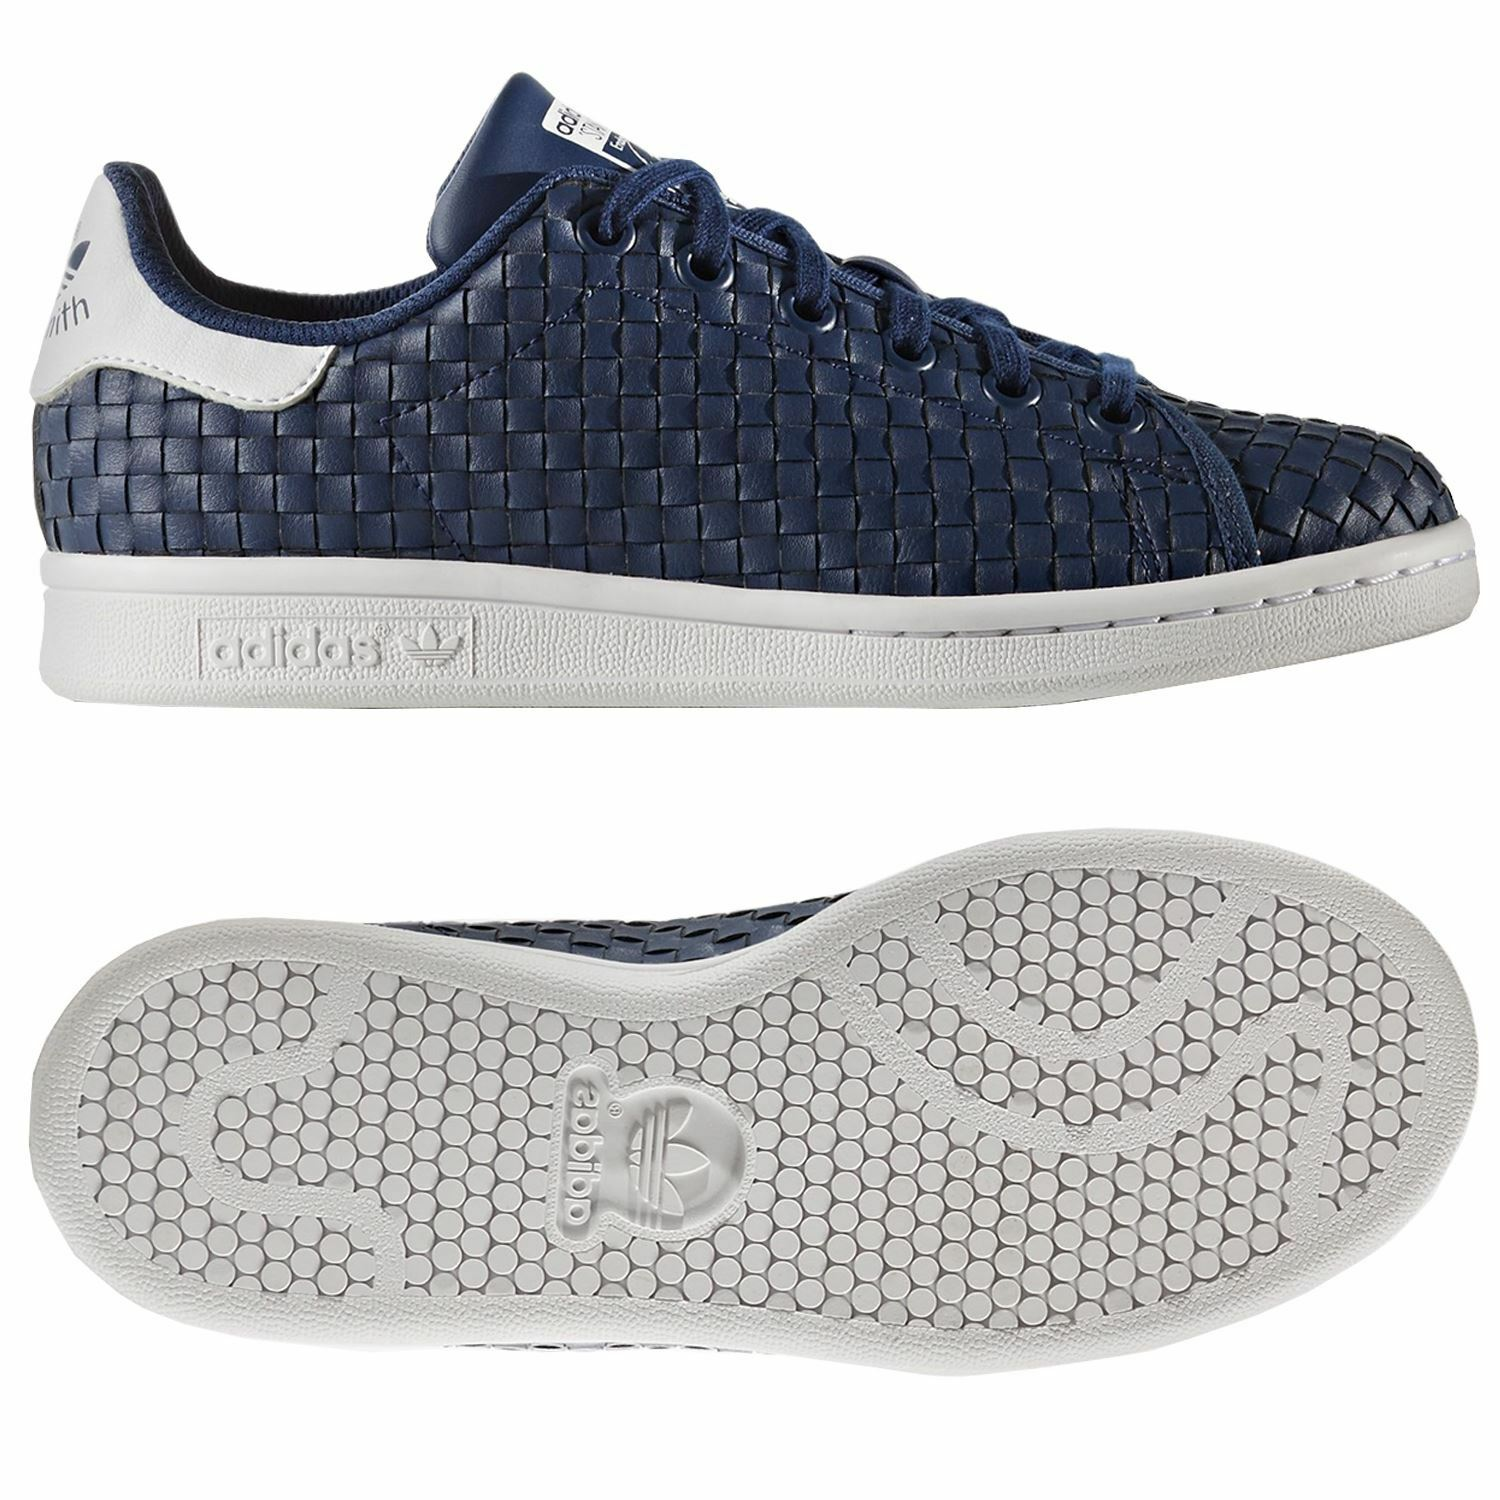 Adidas originals stan trainer smith junior - trainer stan Blau marine frauen kinder trefoil neue e64687